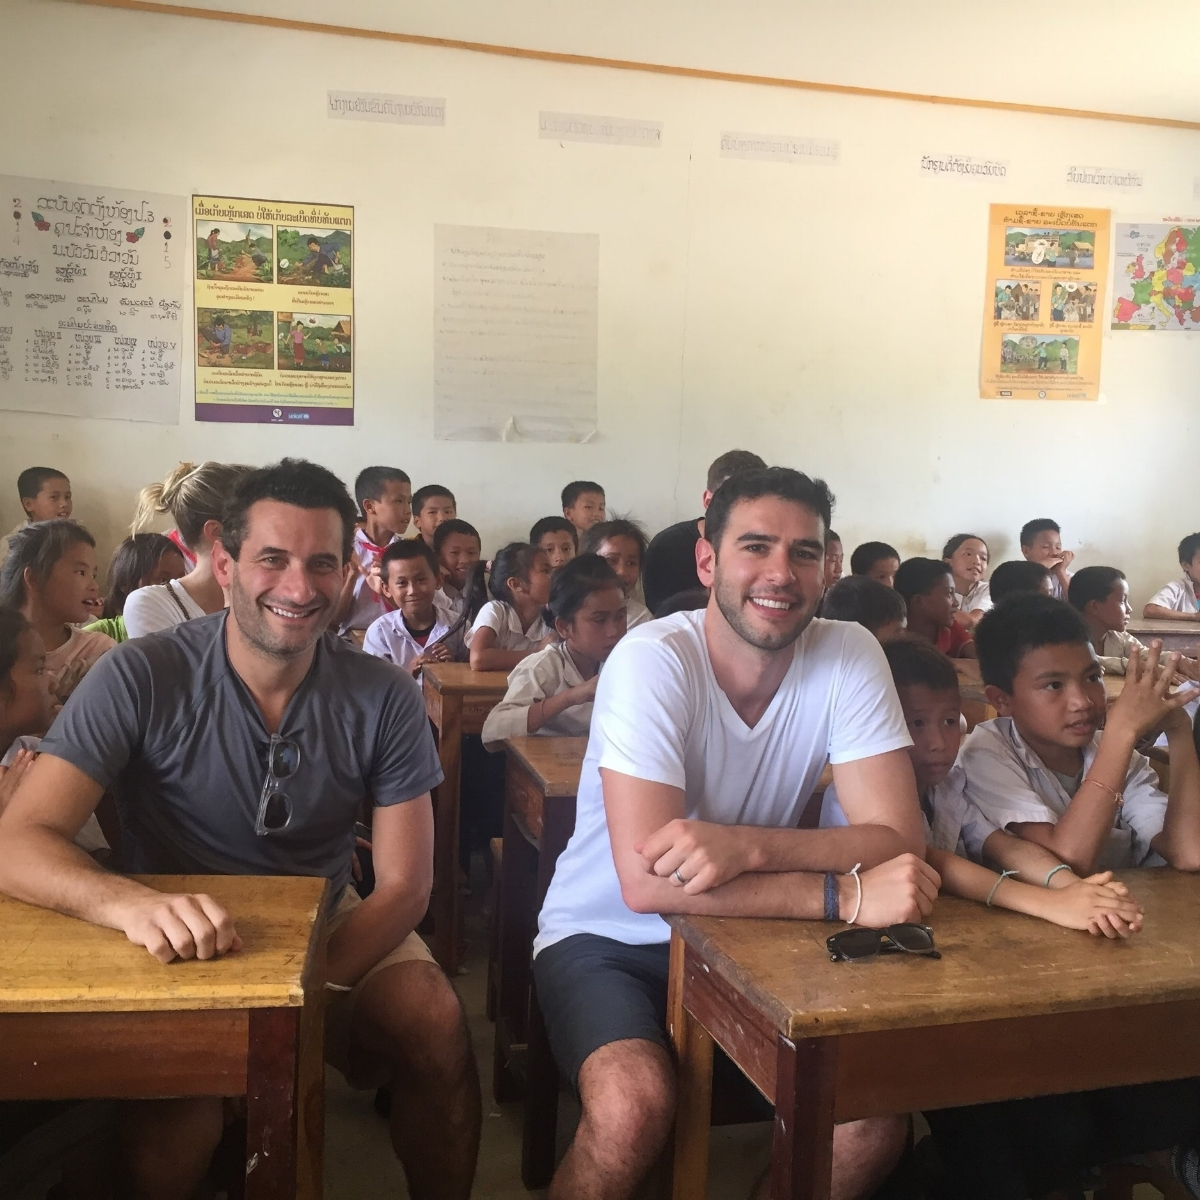 ✏️Matt and Pencils of Promise founder Adam Braun in Laos in a new school recently built as part of POP's efforts in Southeast Asia✏️